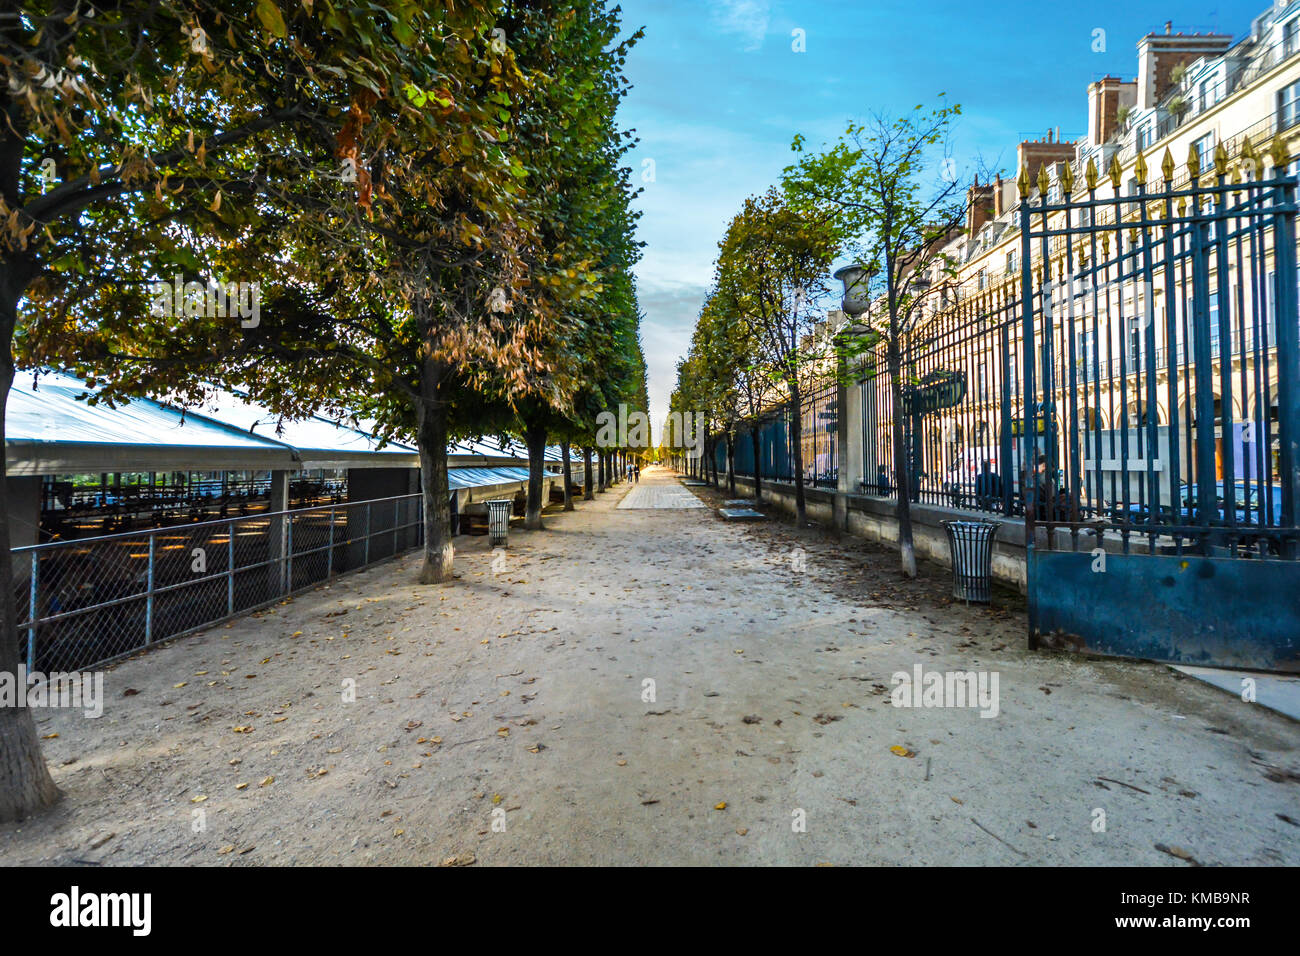 The gated entrance to the Tuileries Garden, or Jardin des Tuileries on a sunny day in early autumn in Paris France Stock Photo